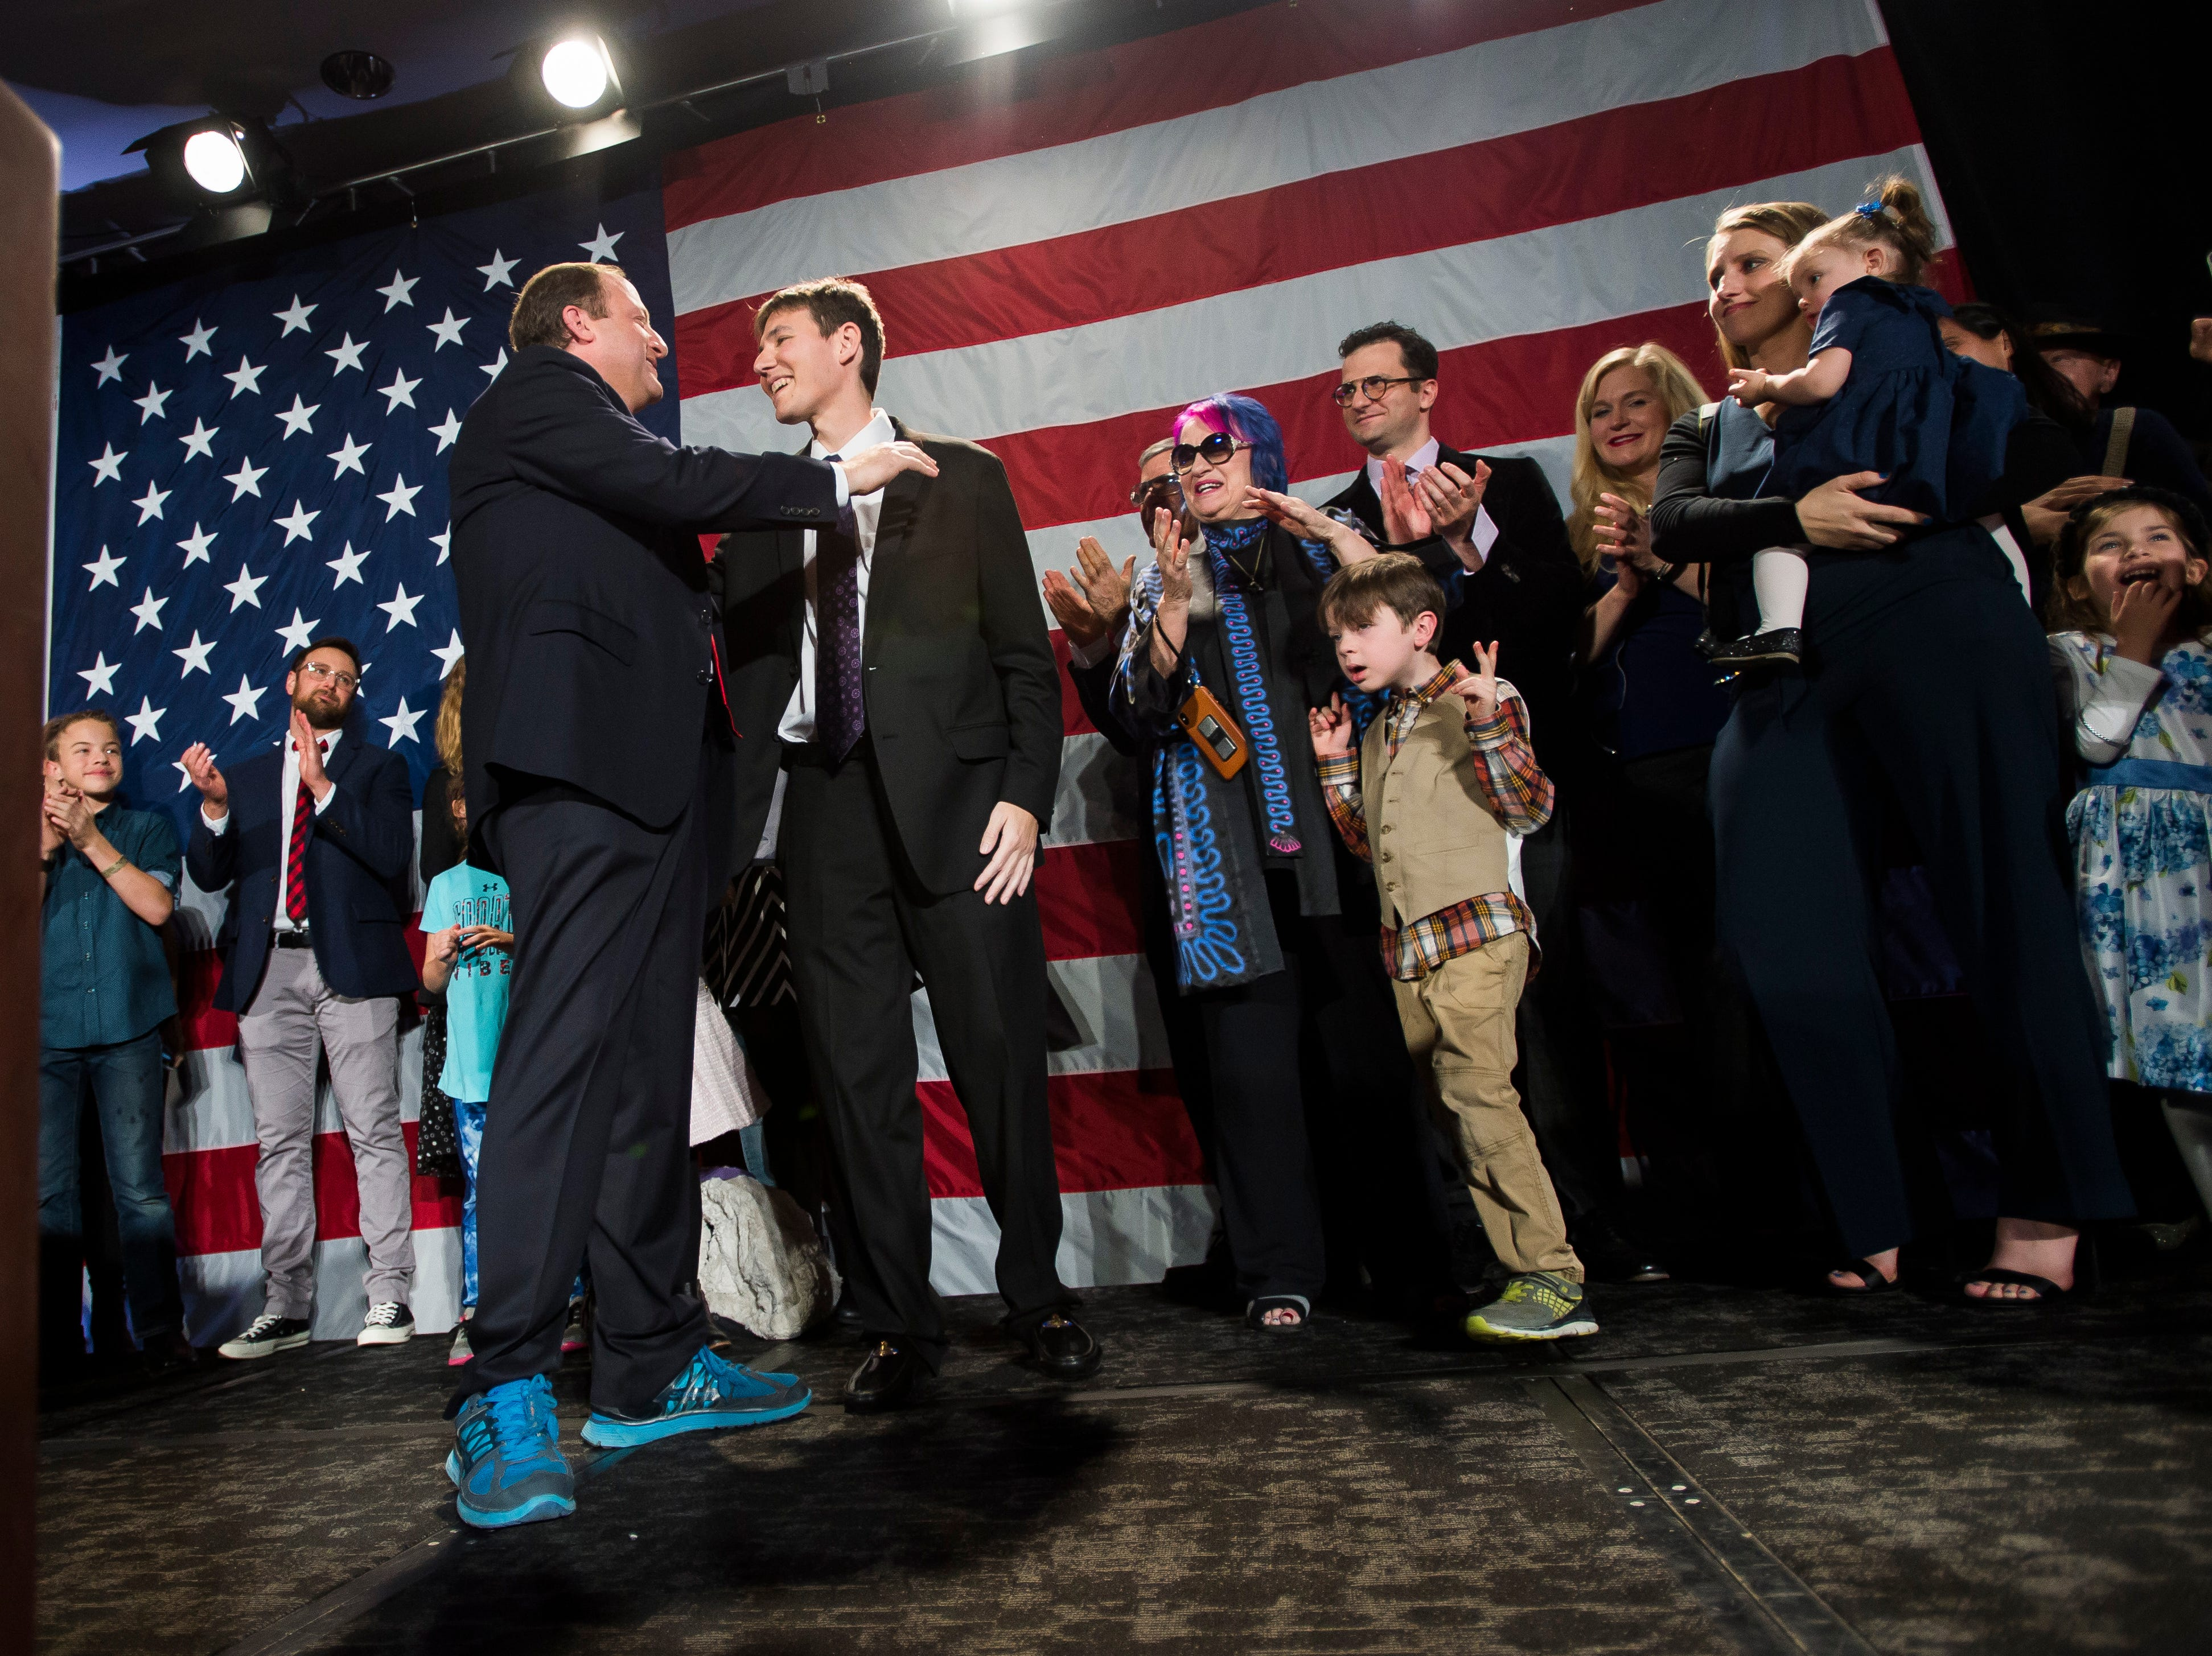 Democratic candidate for Colorado governor Jared Polis hugs his partner Marlon Reis after Republican candidate Walker Stapleton conceded the race on Tuesday, Nov. 6, 2018, at the Westin Denver Downtown hotel in Denver, Colo.